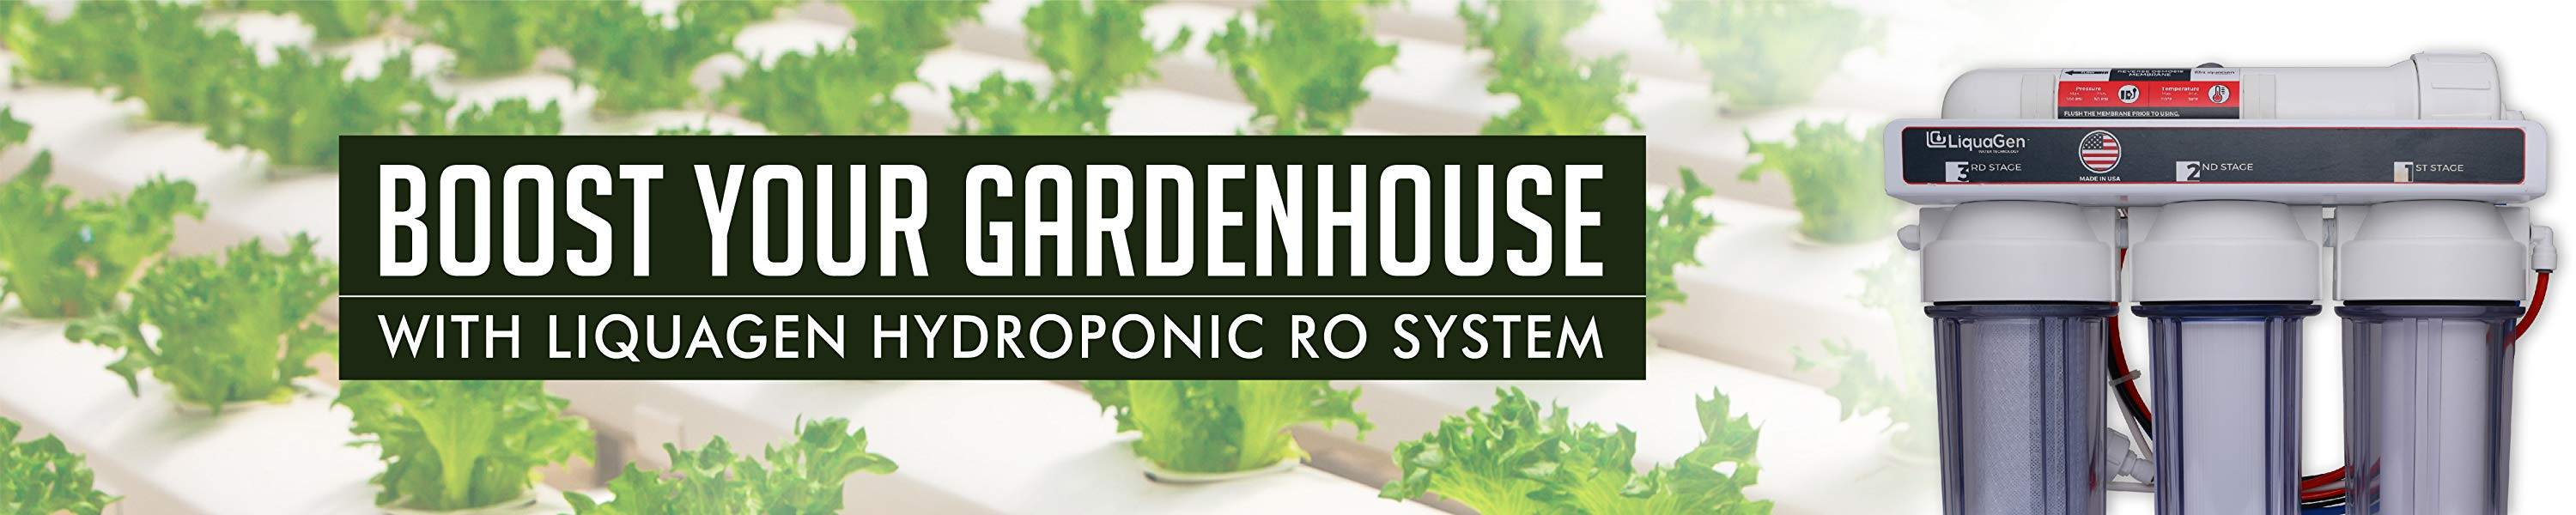 Hydroponic ro systems